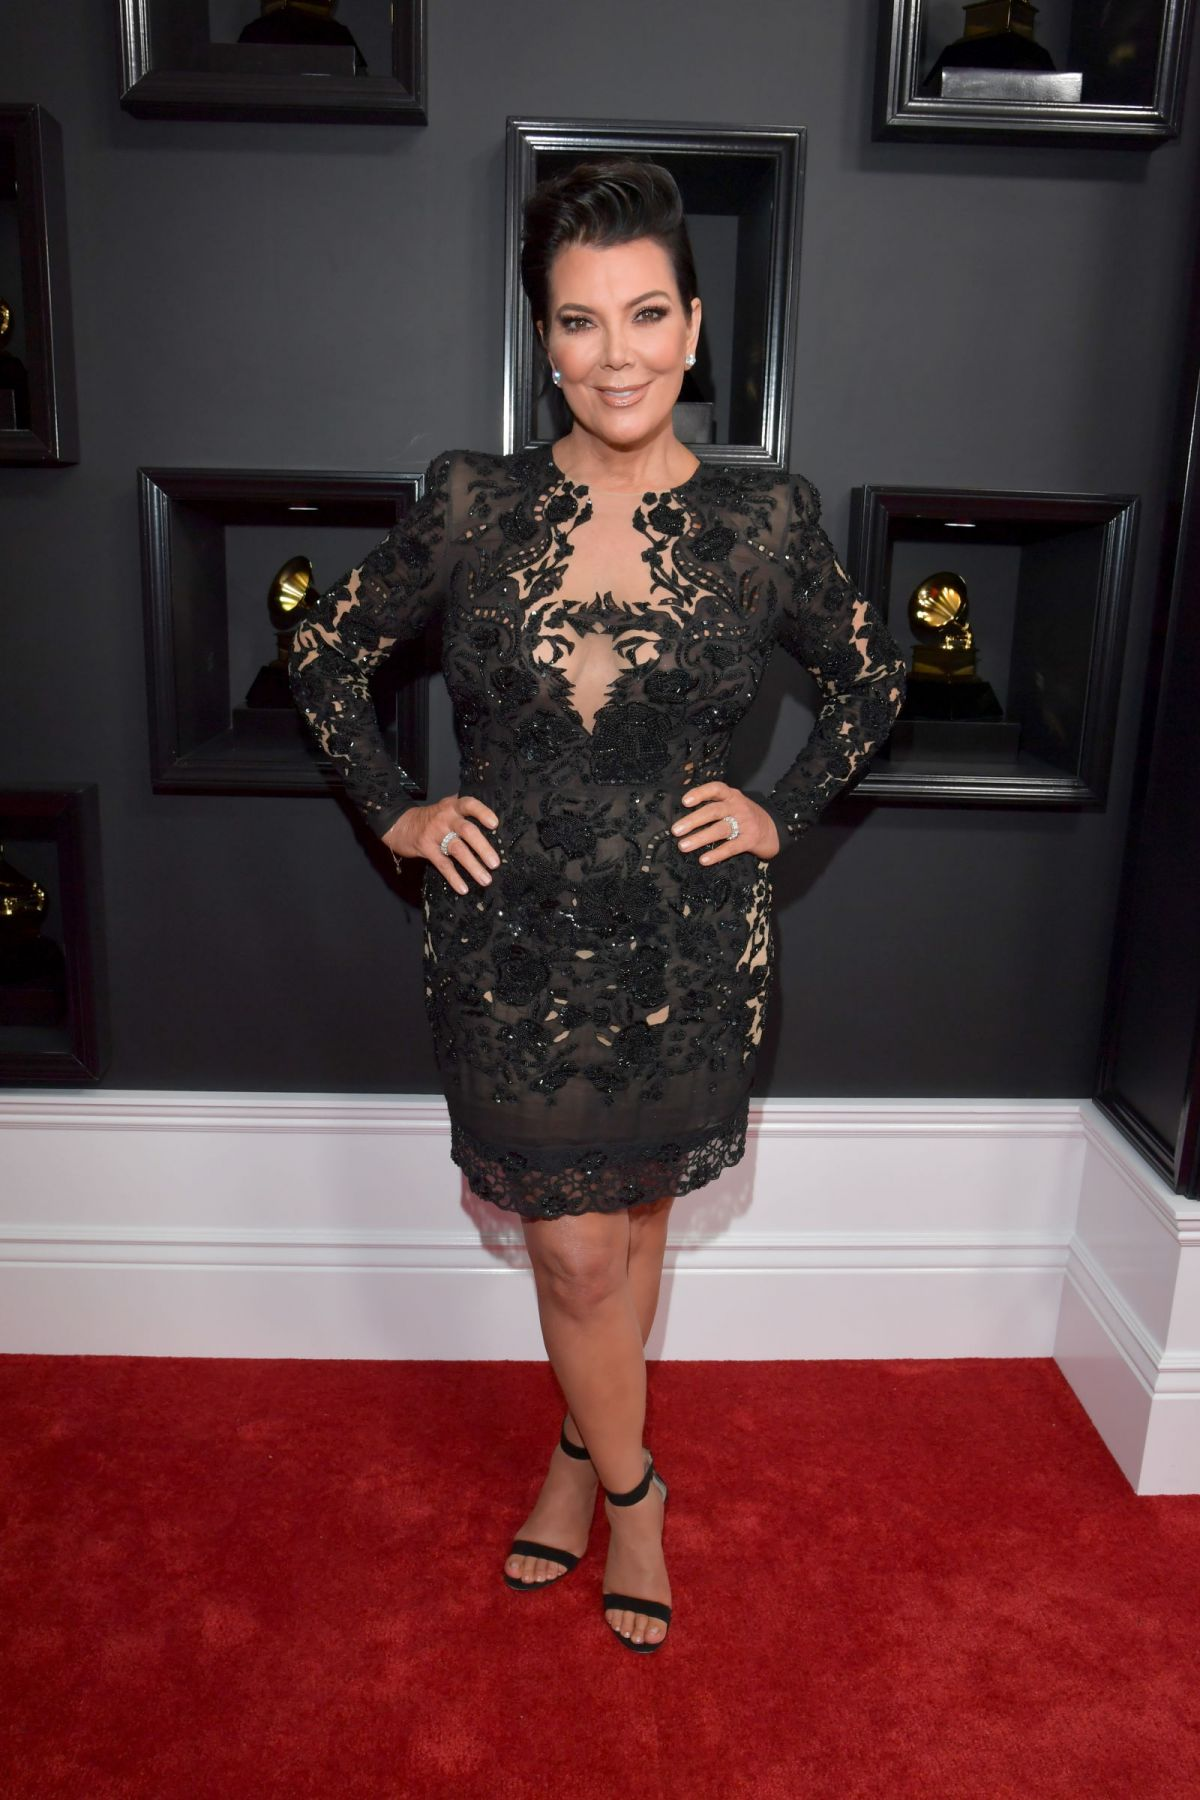 KRIS JENNER at 59th Annual Grammy Awards in Los Angeles 02/12/2017